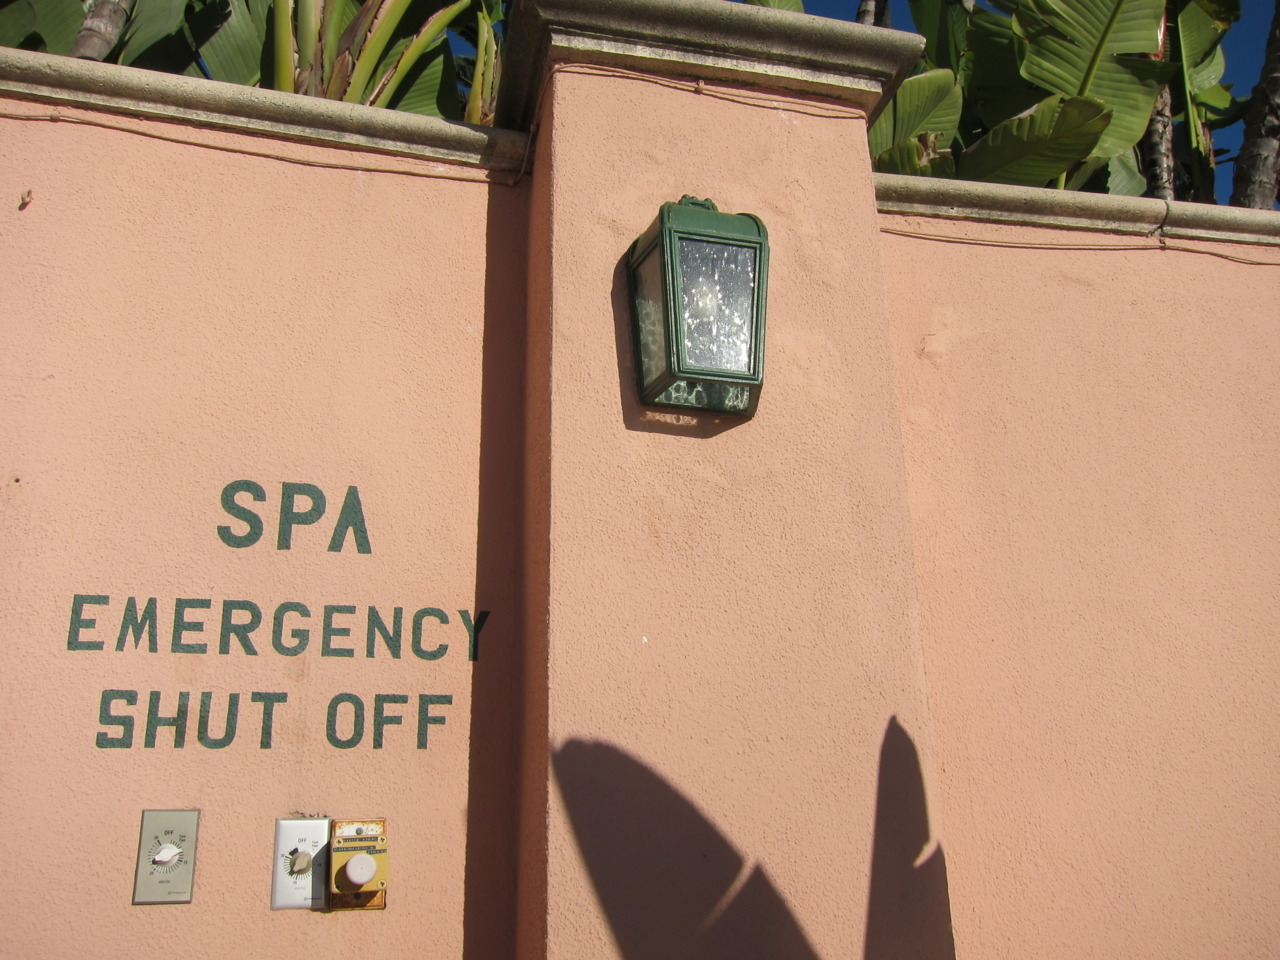 SPA EMERGENCY SHUT OFF